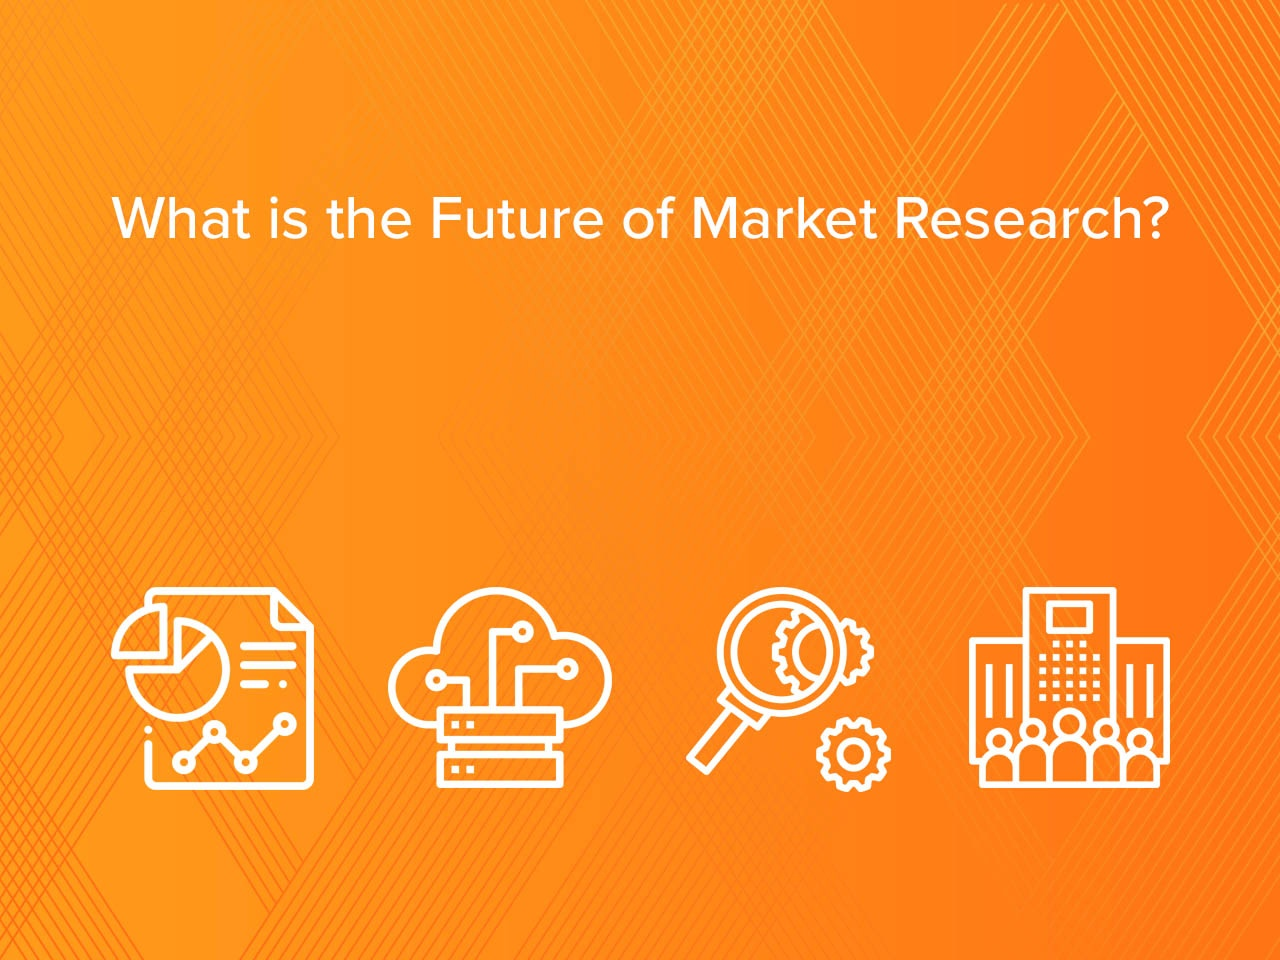 What is the Future of Market Research?